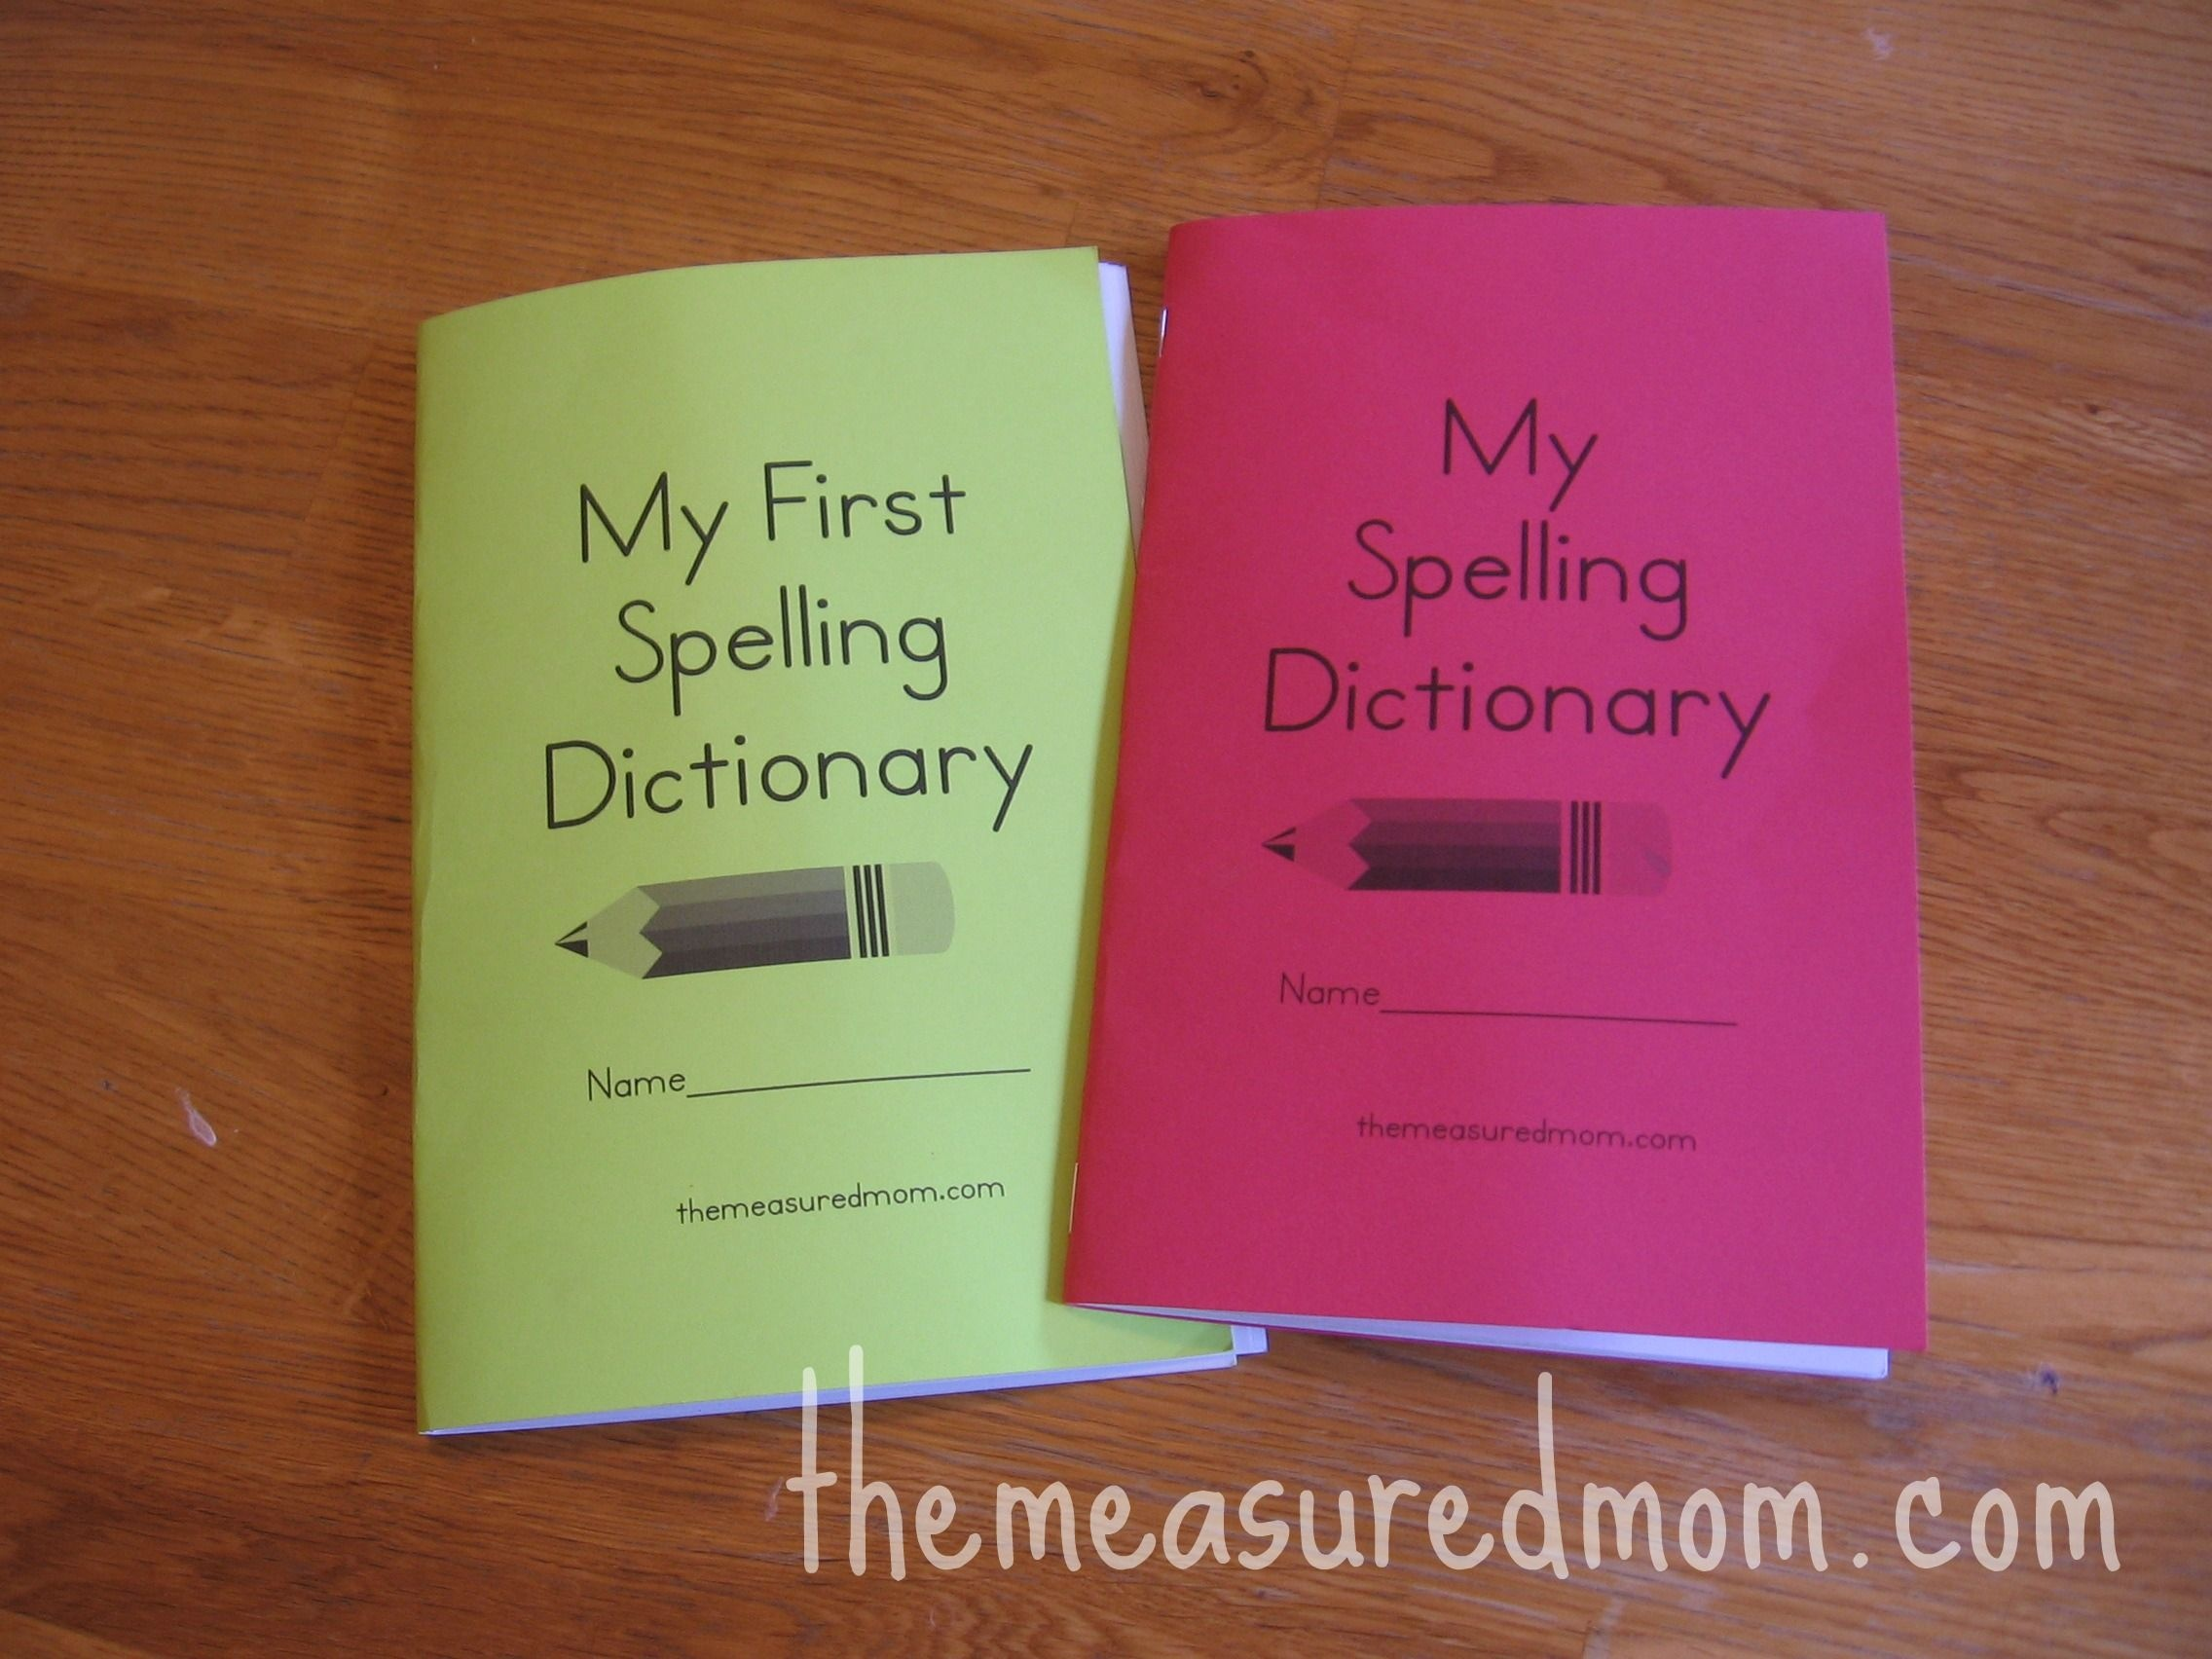 Printable Spelling Dictionary For Kids   Free Cute Printables - My Spelling Dictionary Printable Free